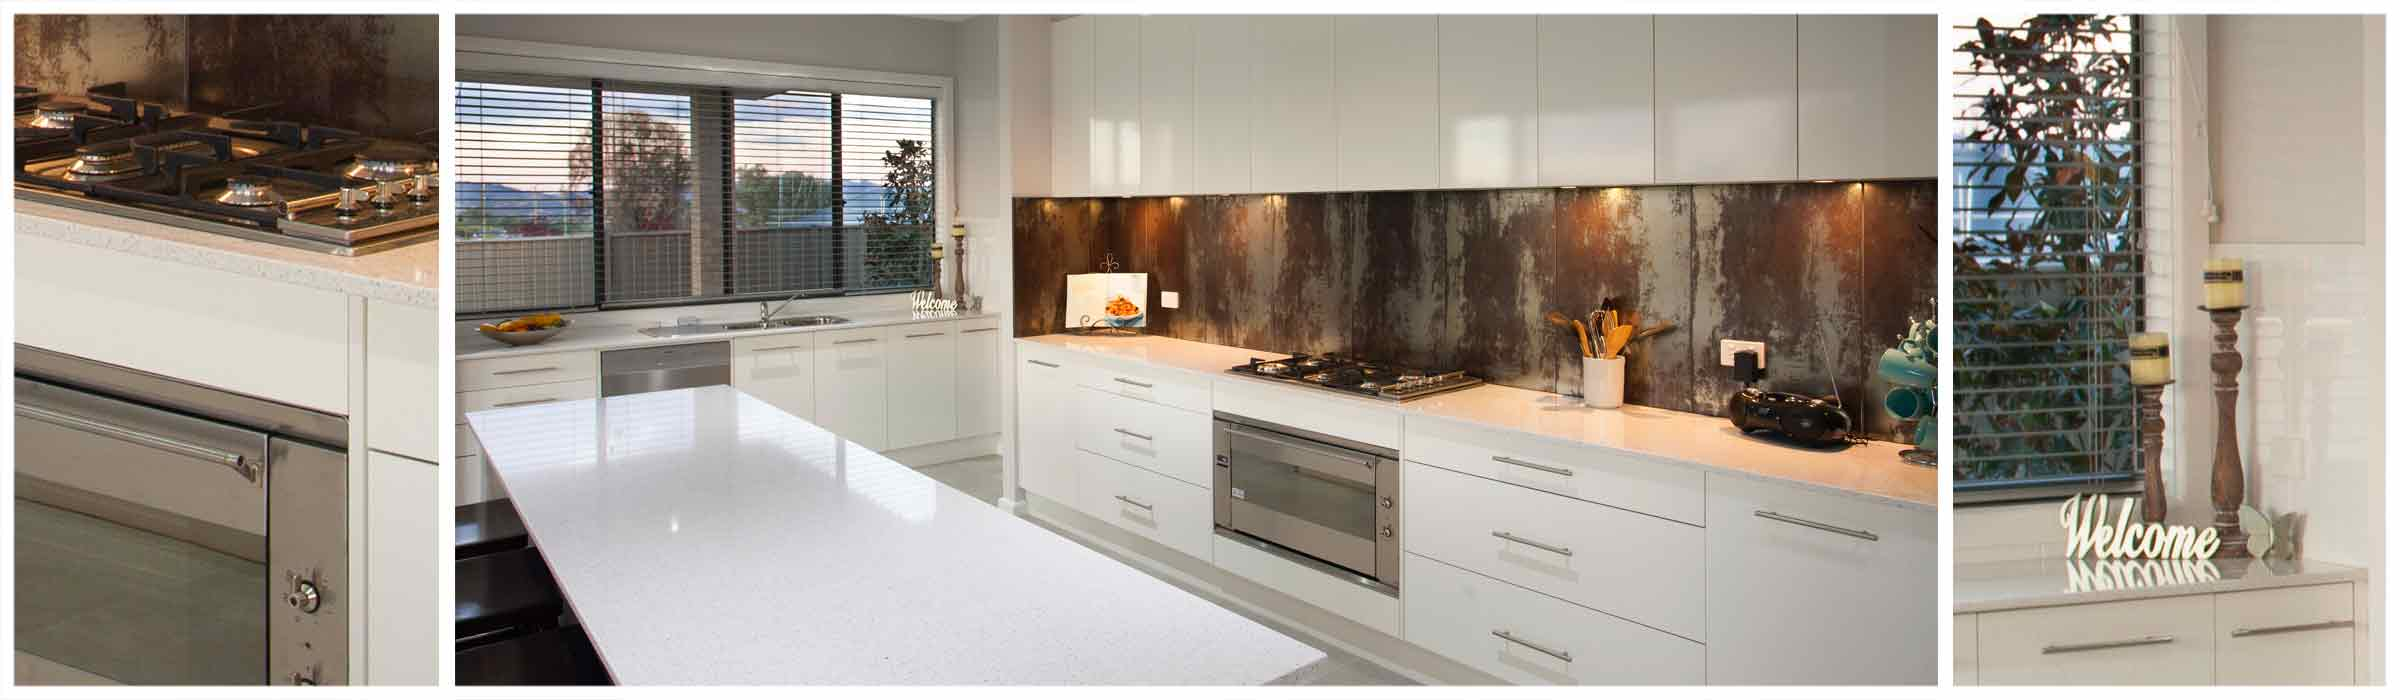 Kitchens Tamworth Pulse Kitchens